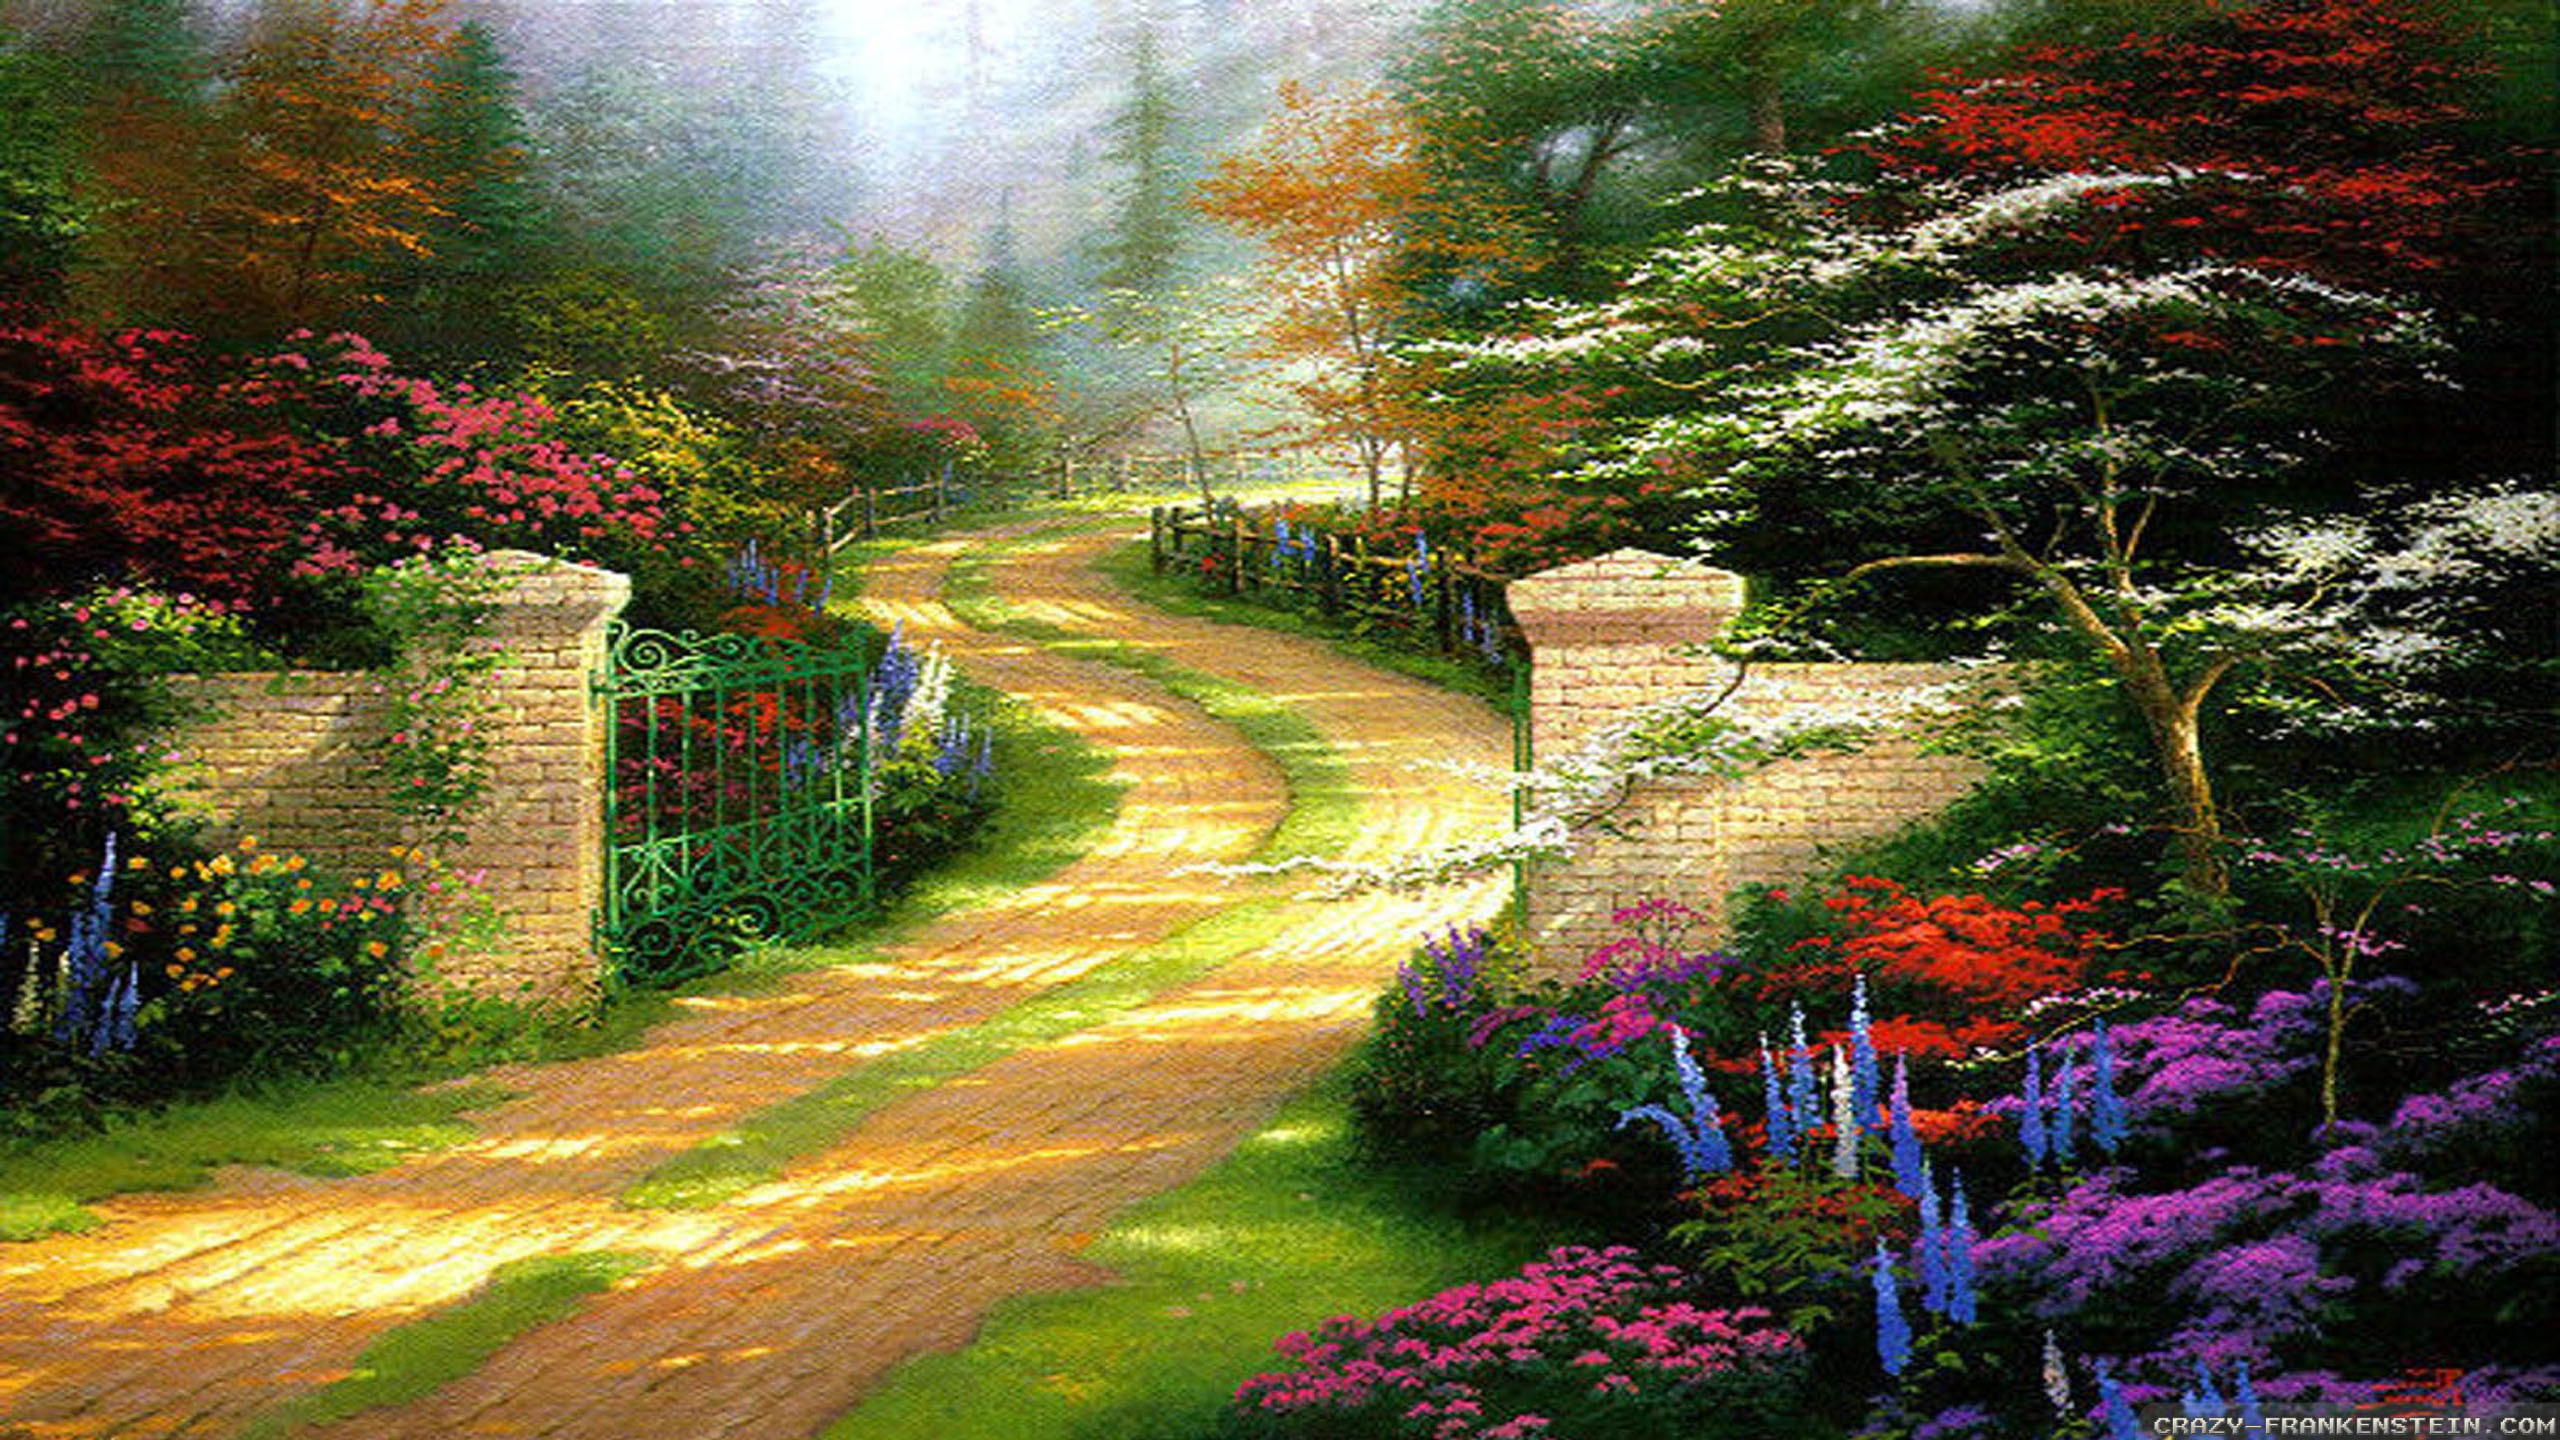 Wallpaper: Spring gate Spring nature wallpapers. Resolution: 1024×768    1280×1024   1600×1200. Widescreen Res: 1440×900   1680×1050   1920×1200